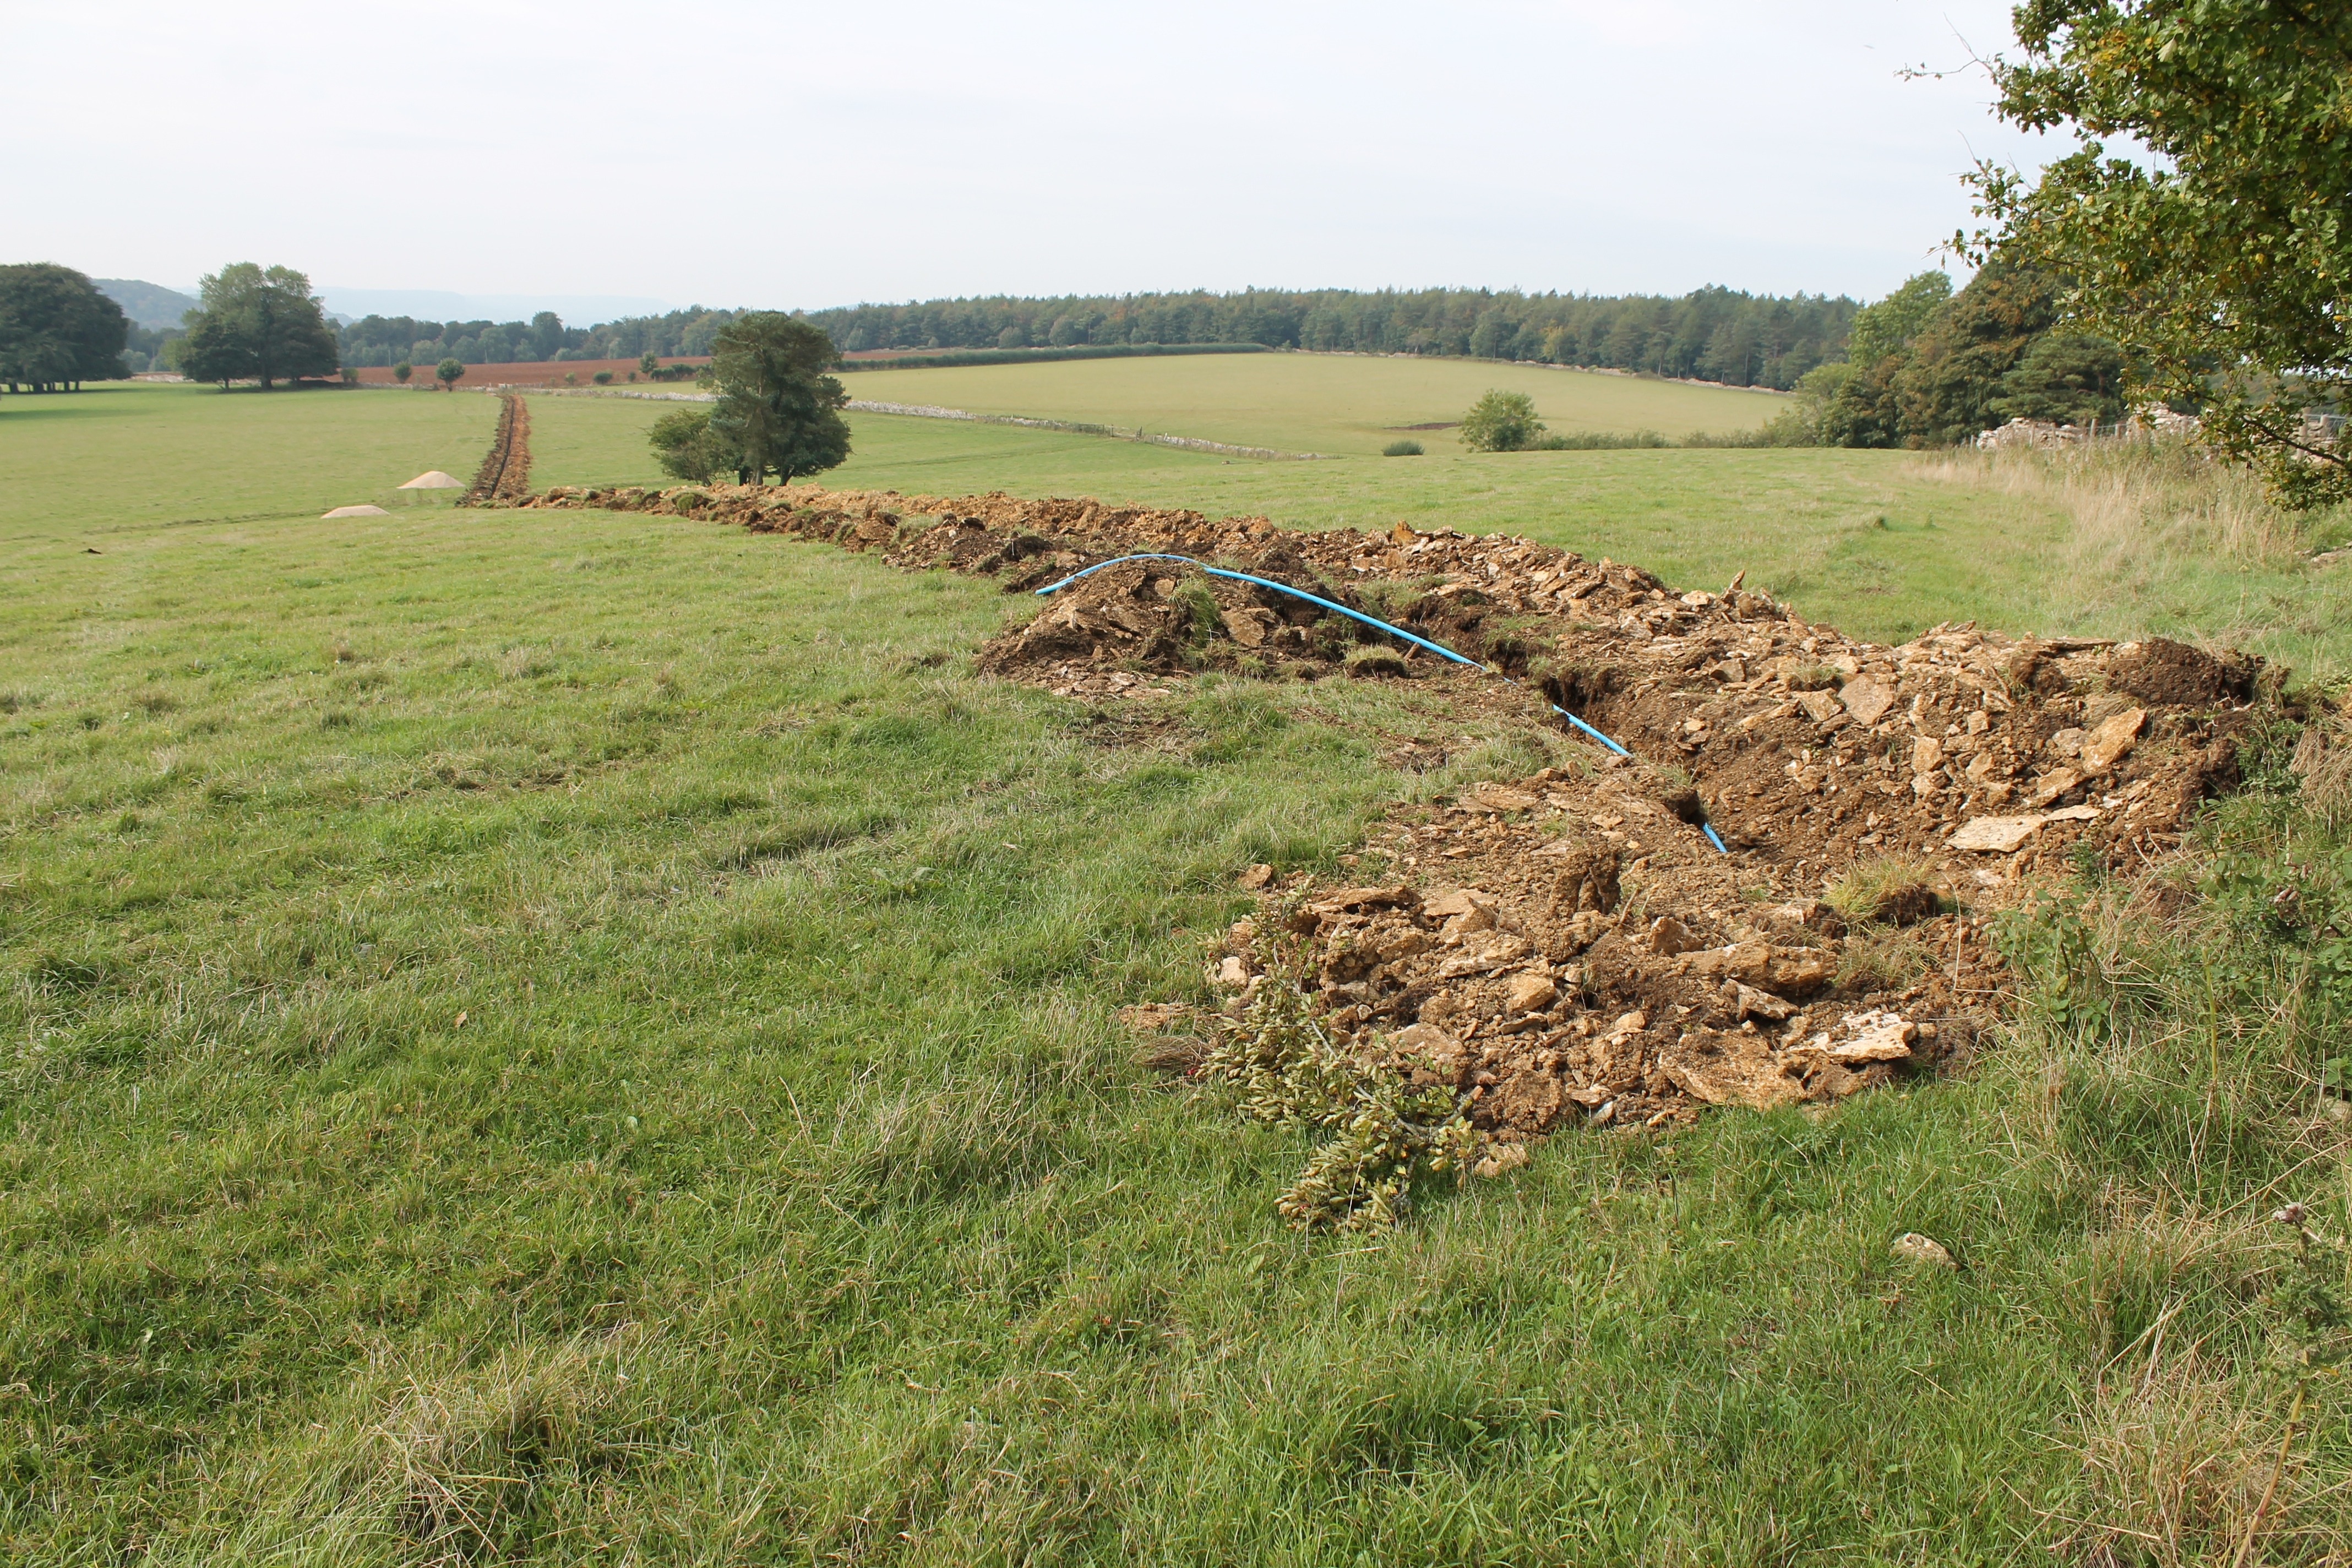 A typical watching brief situation. This time for a new water pipe at Ebworth, Gloucestershire dug in September this year.